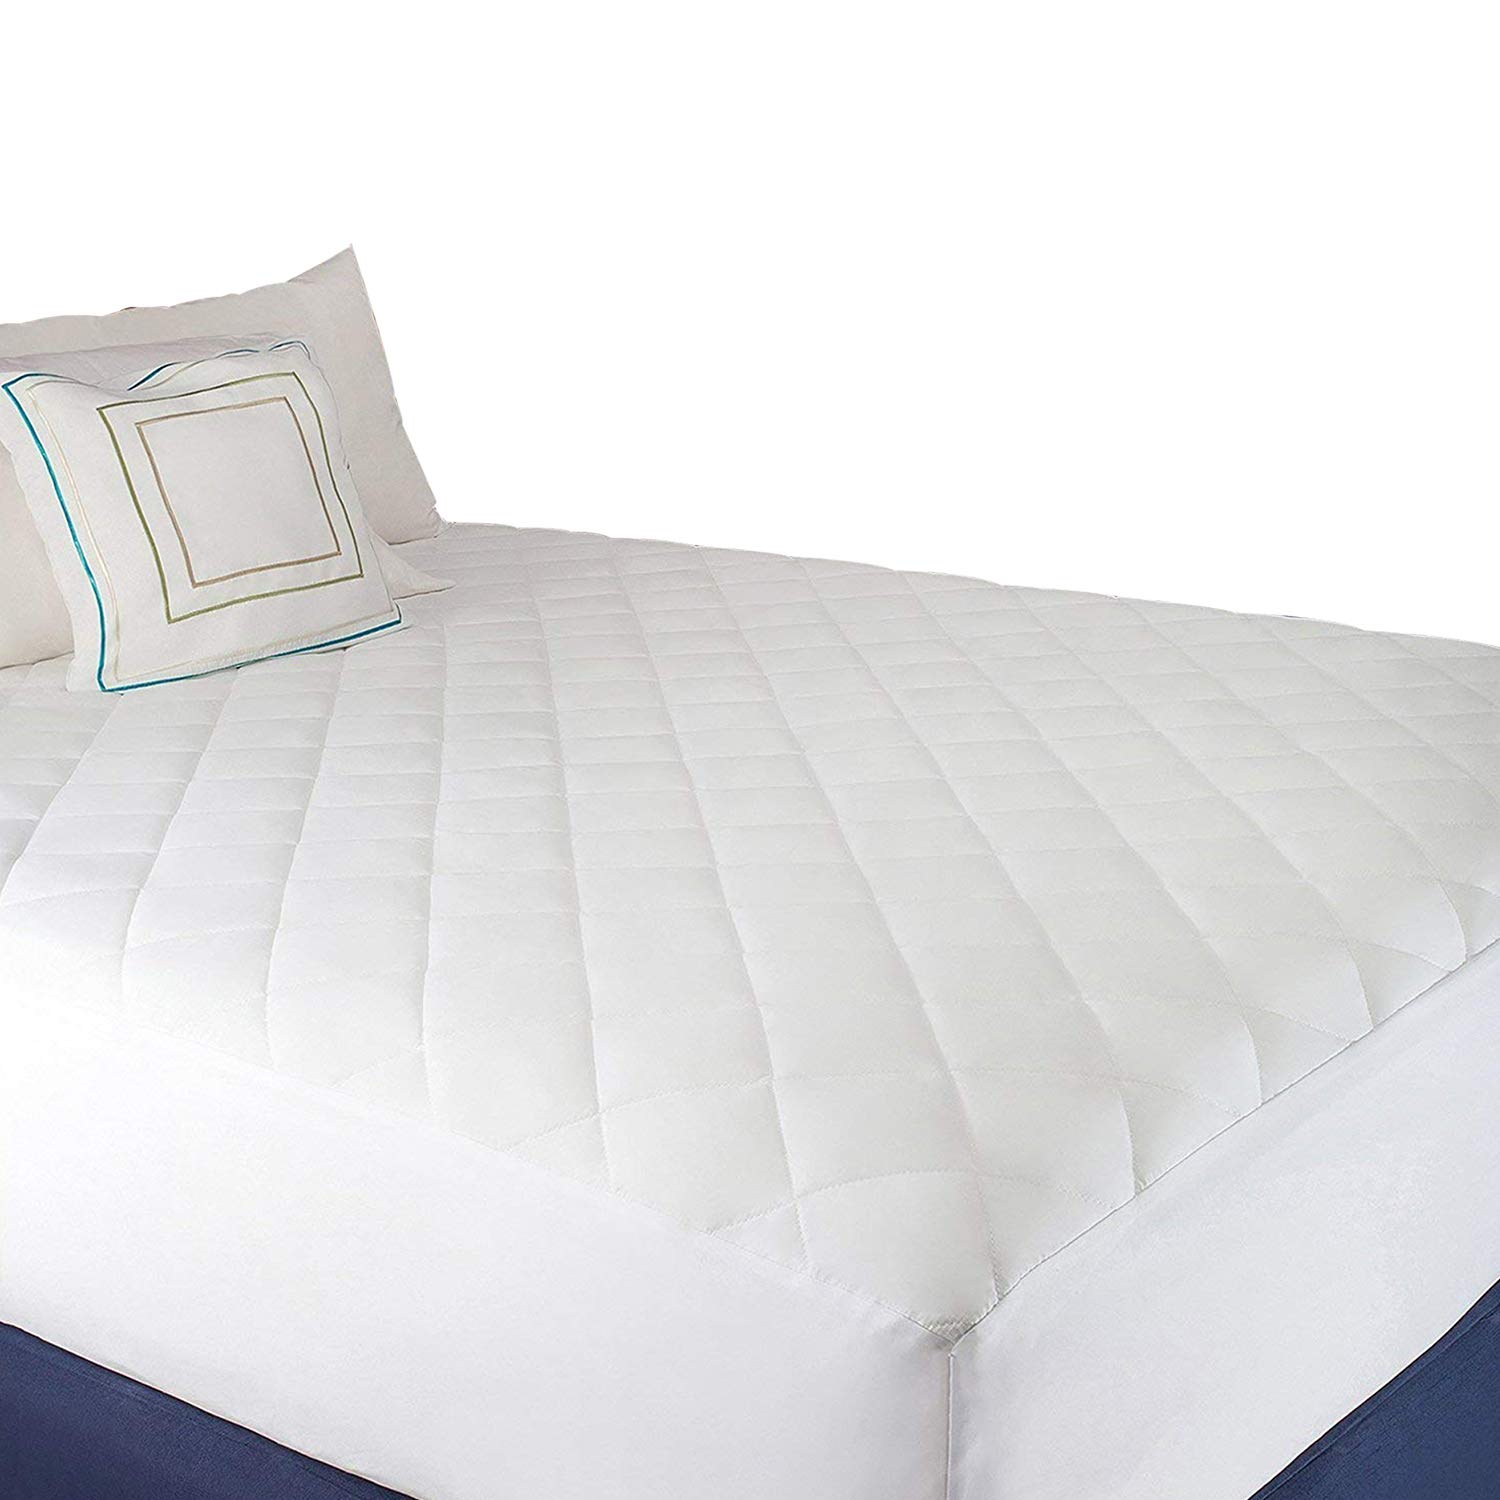 Abit Comfort Mattress cover, Quilted fitted mattress pad queen fits up to 20'' deep hypoallergenic comfortable soft white cotton-poly